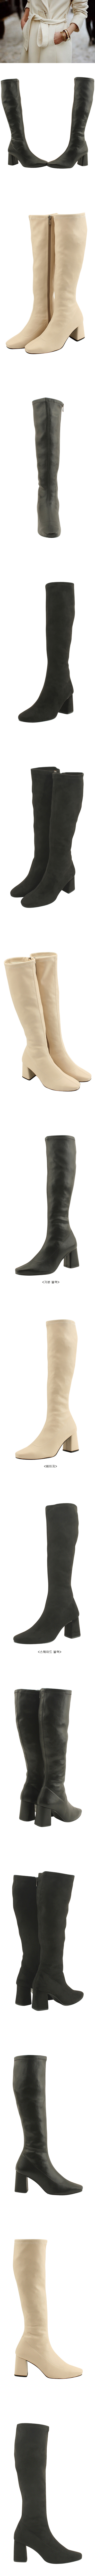 Square Toe Span High Heels Long Boots Suede